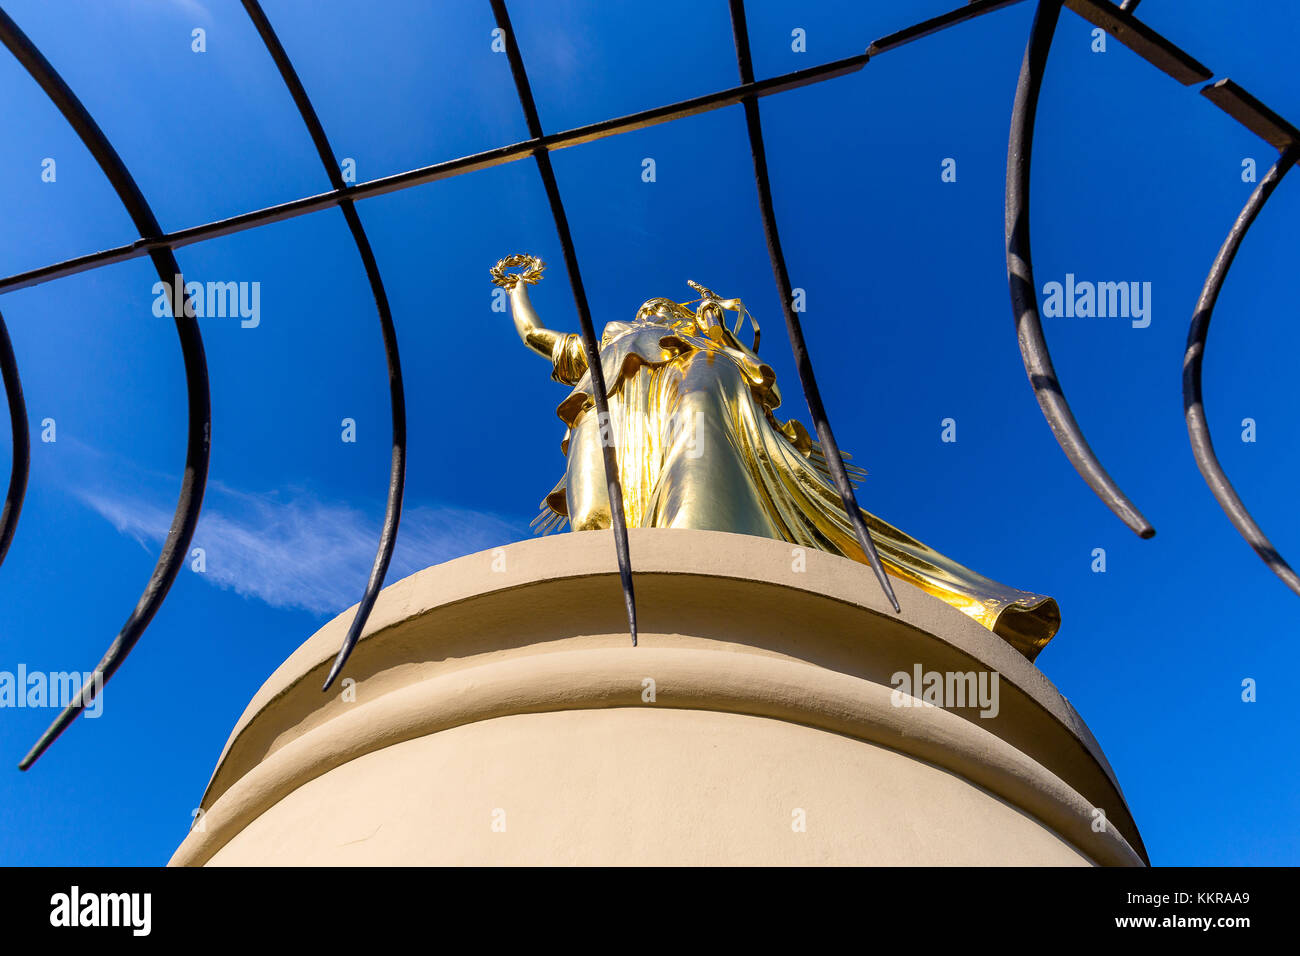 The Victoria on the victory column in Berlin, lokally known as golden lizzy (Goldelse) - Stock Image